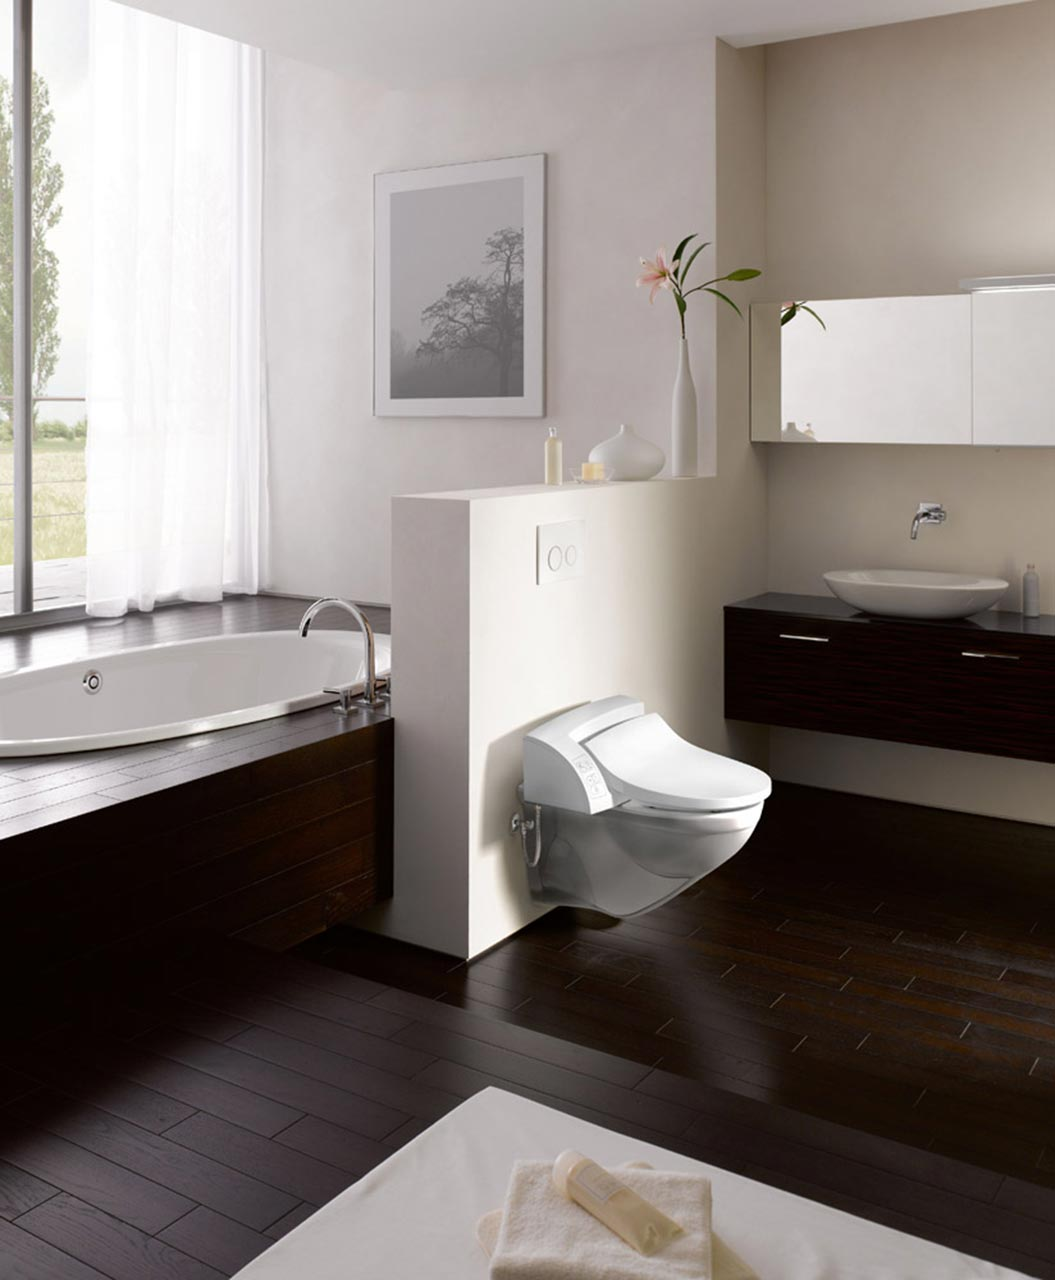 Geberit AquaClean 5000 Plus